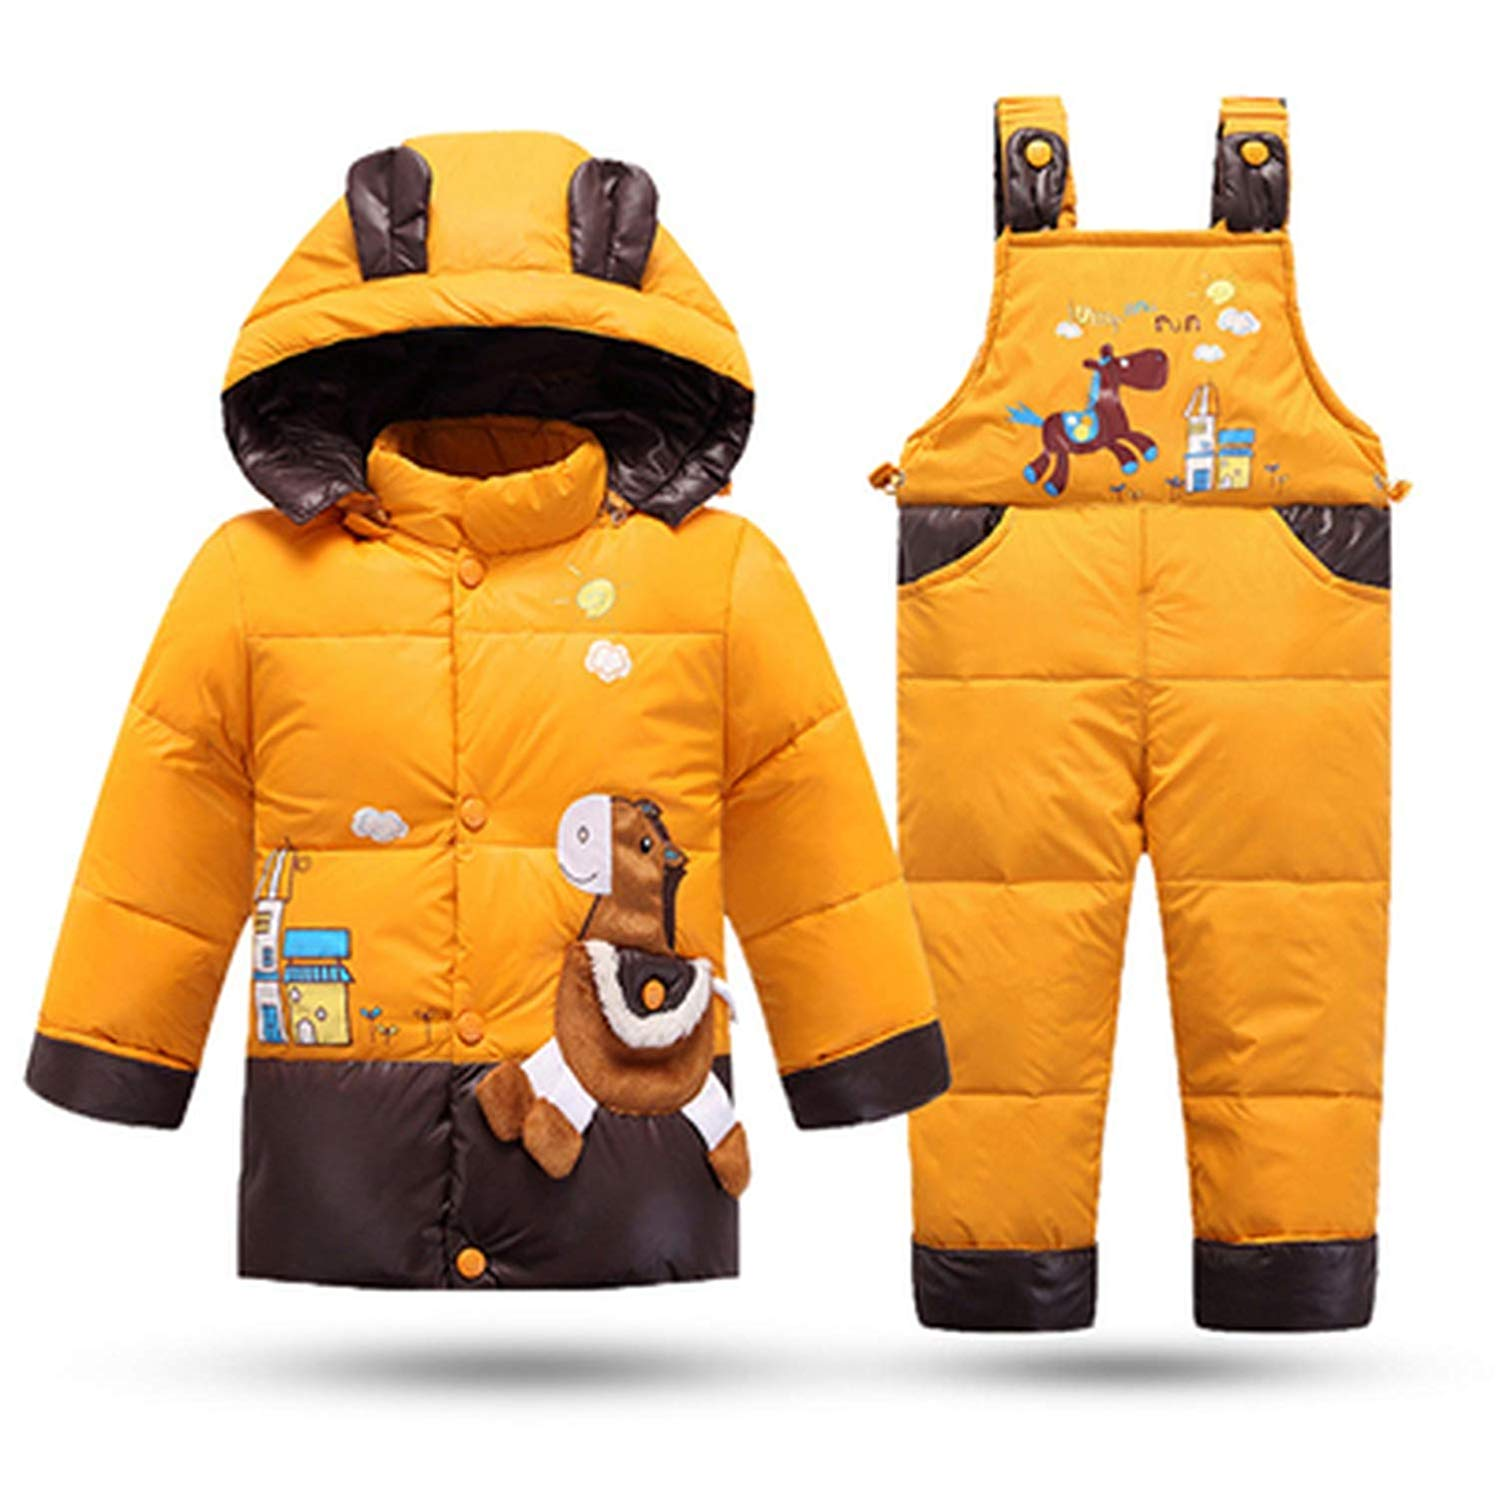 Mandaartins Snowsuit Baby Boy Down Jackets for Girl Kids Clothes Winter Coat Children Outerwear Clothing Set